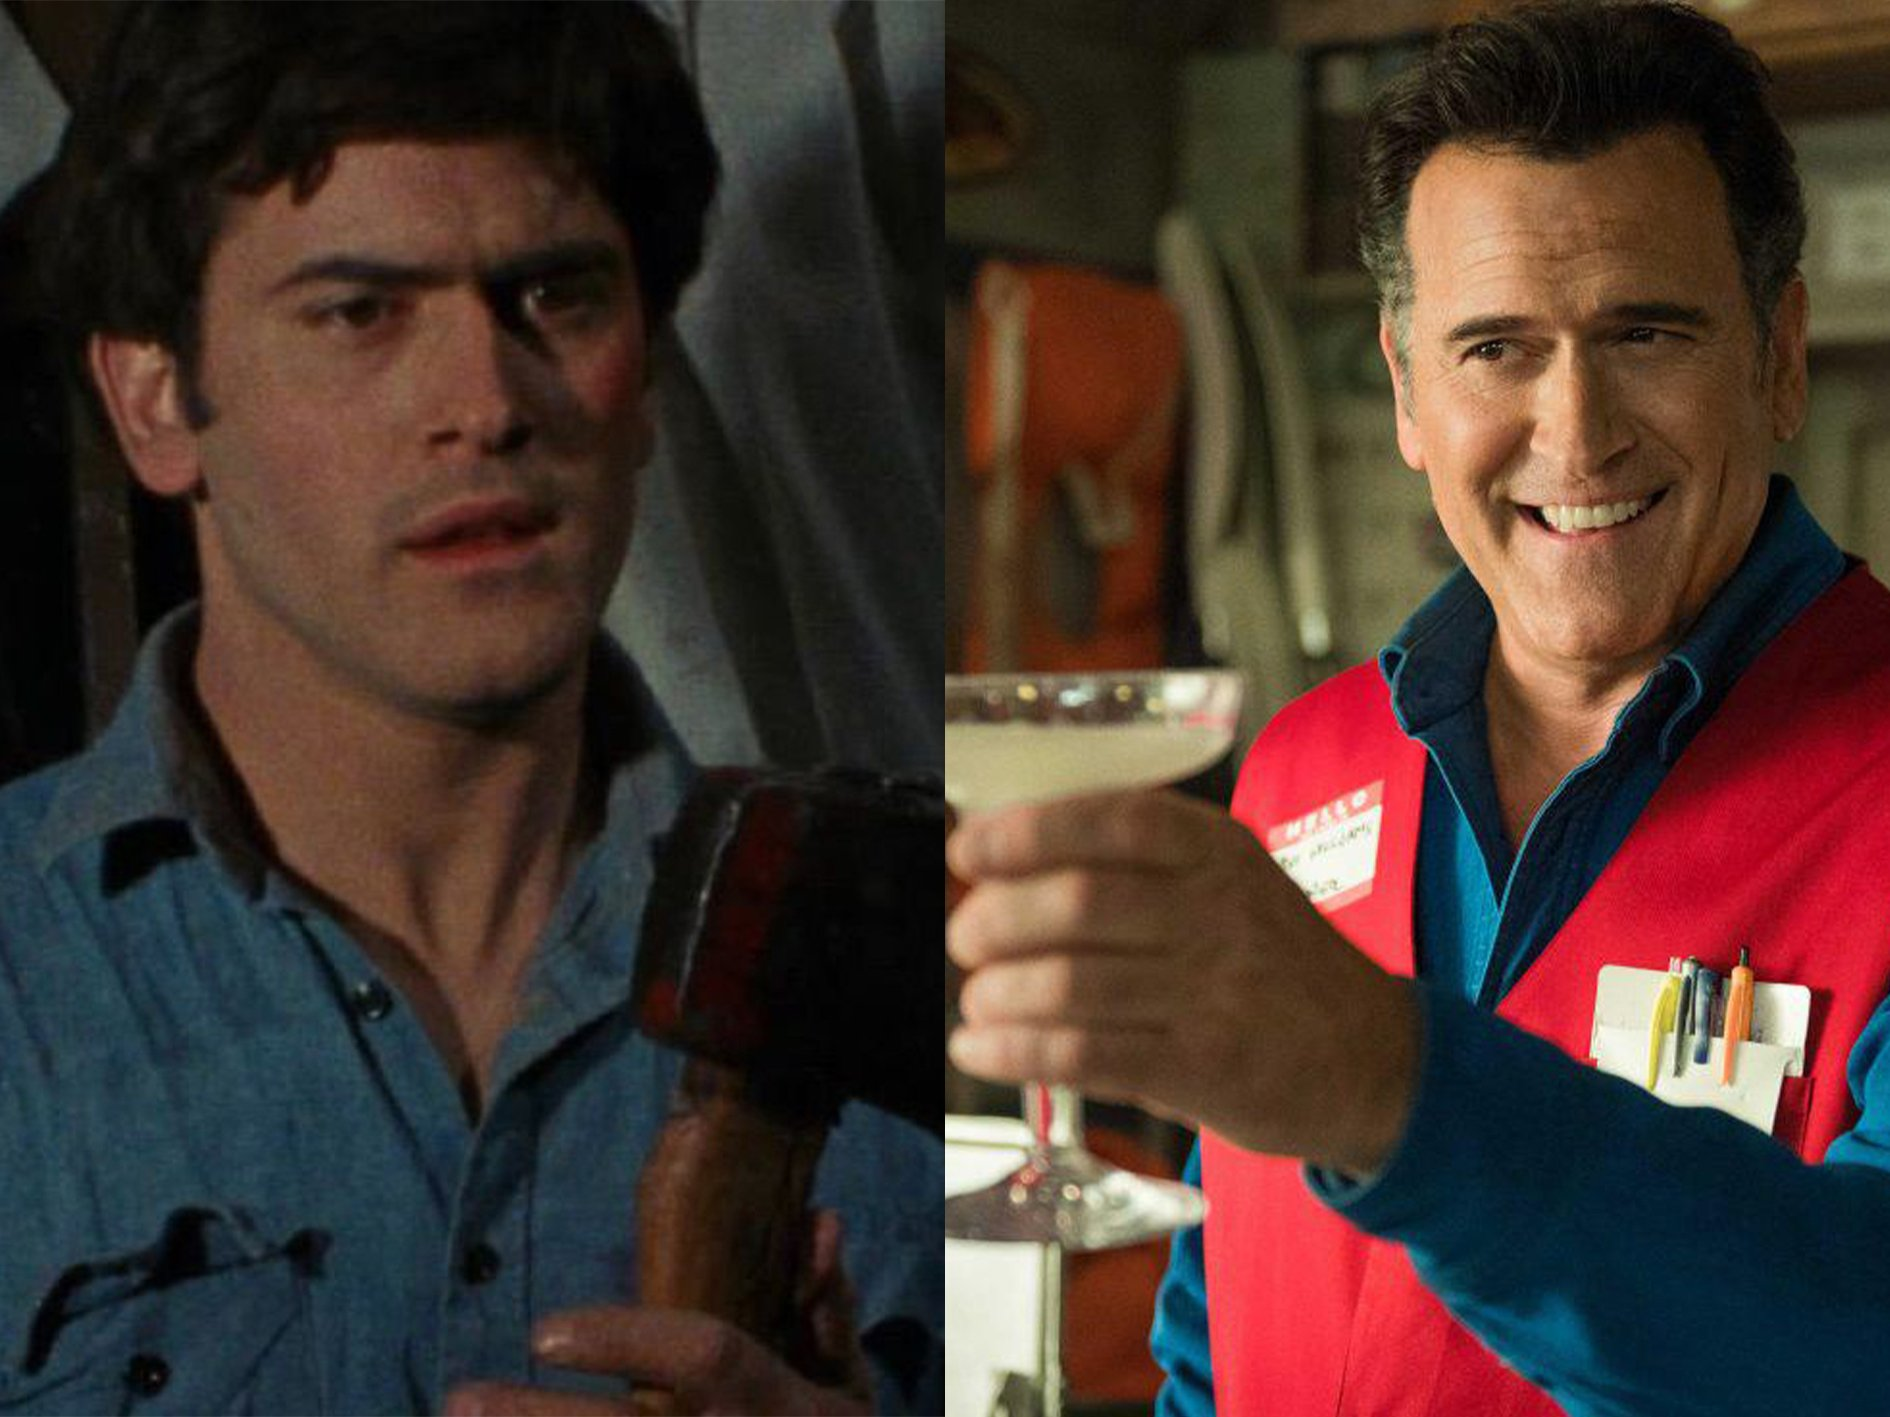 Bruce Campbell The Evil Dead You Won't Believe What The Cast Of The Evil Dead Look Like Now!